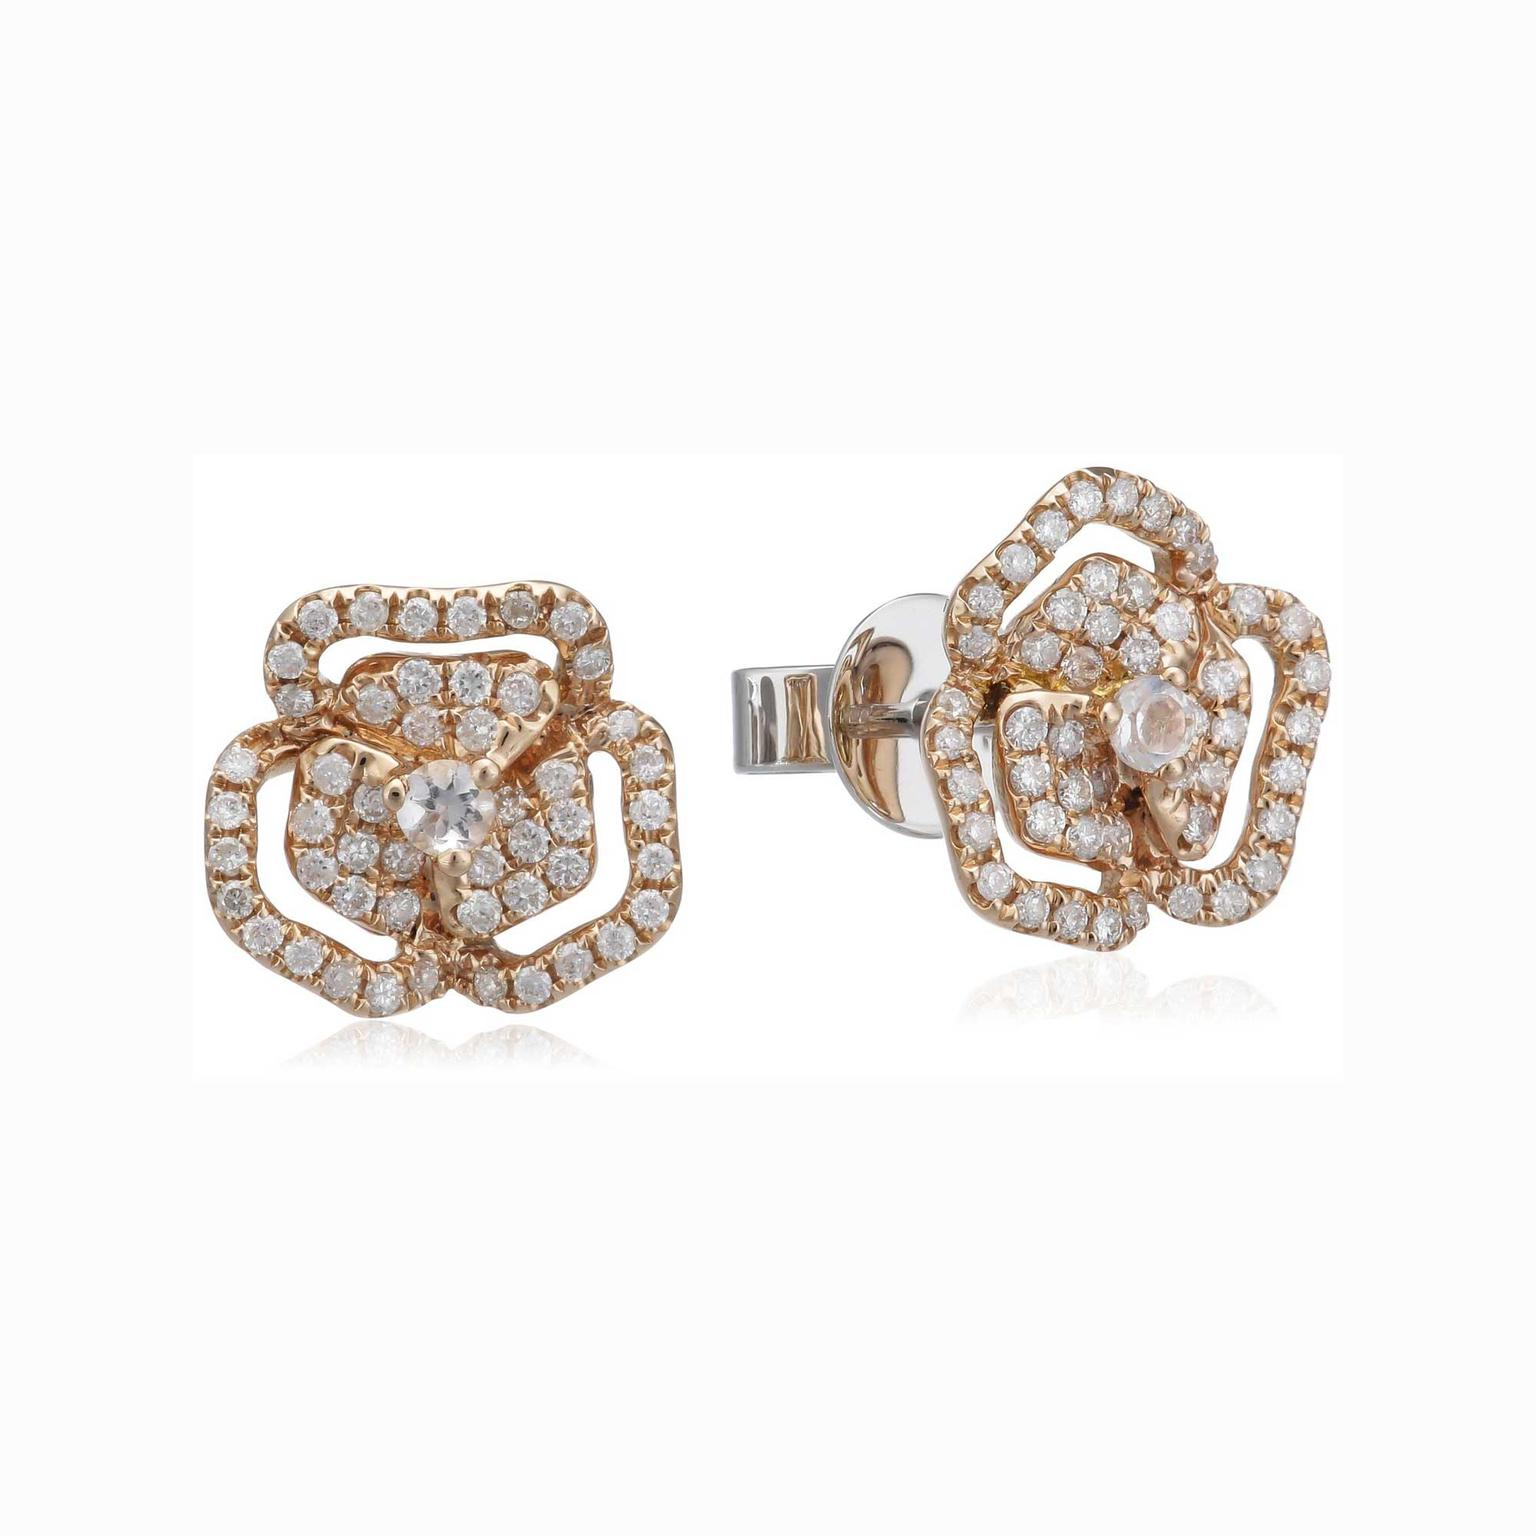 AS29 rose gold diamond flower earrings